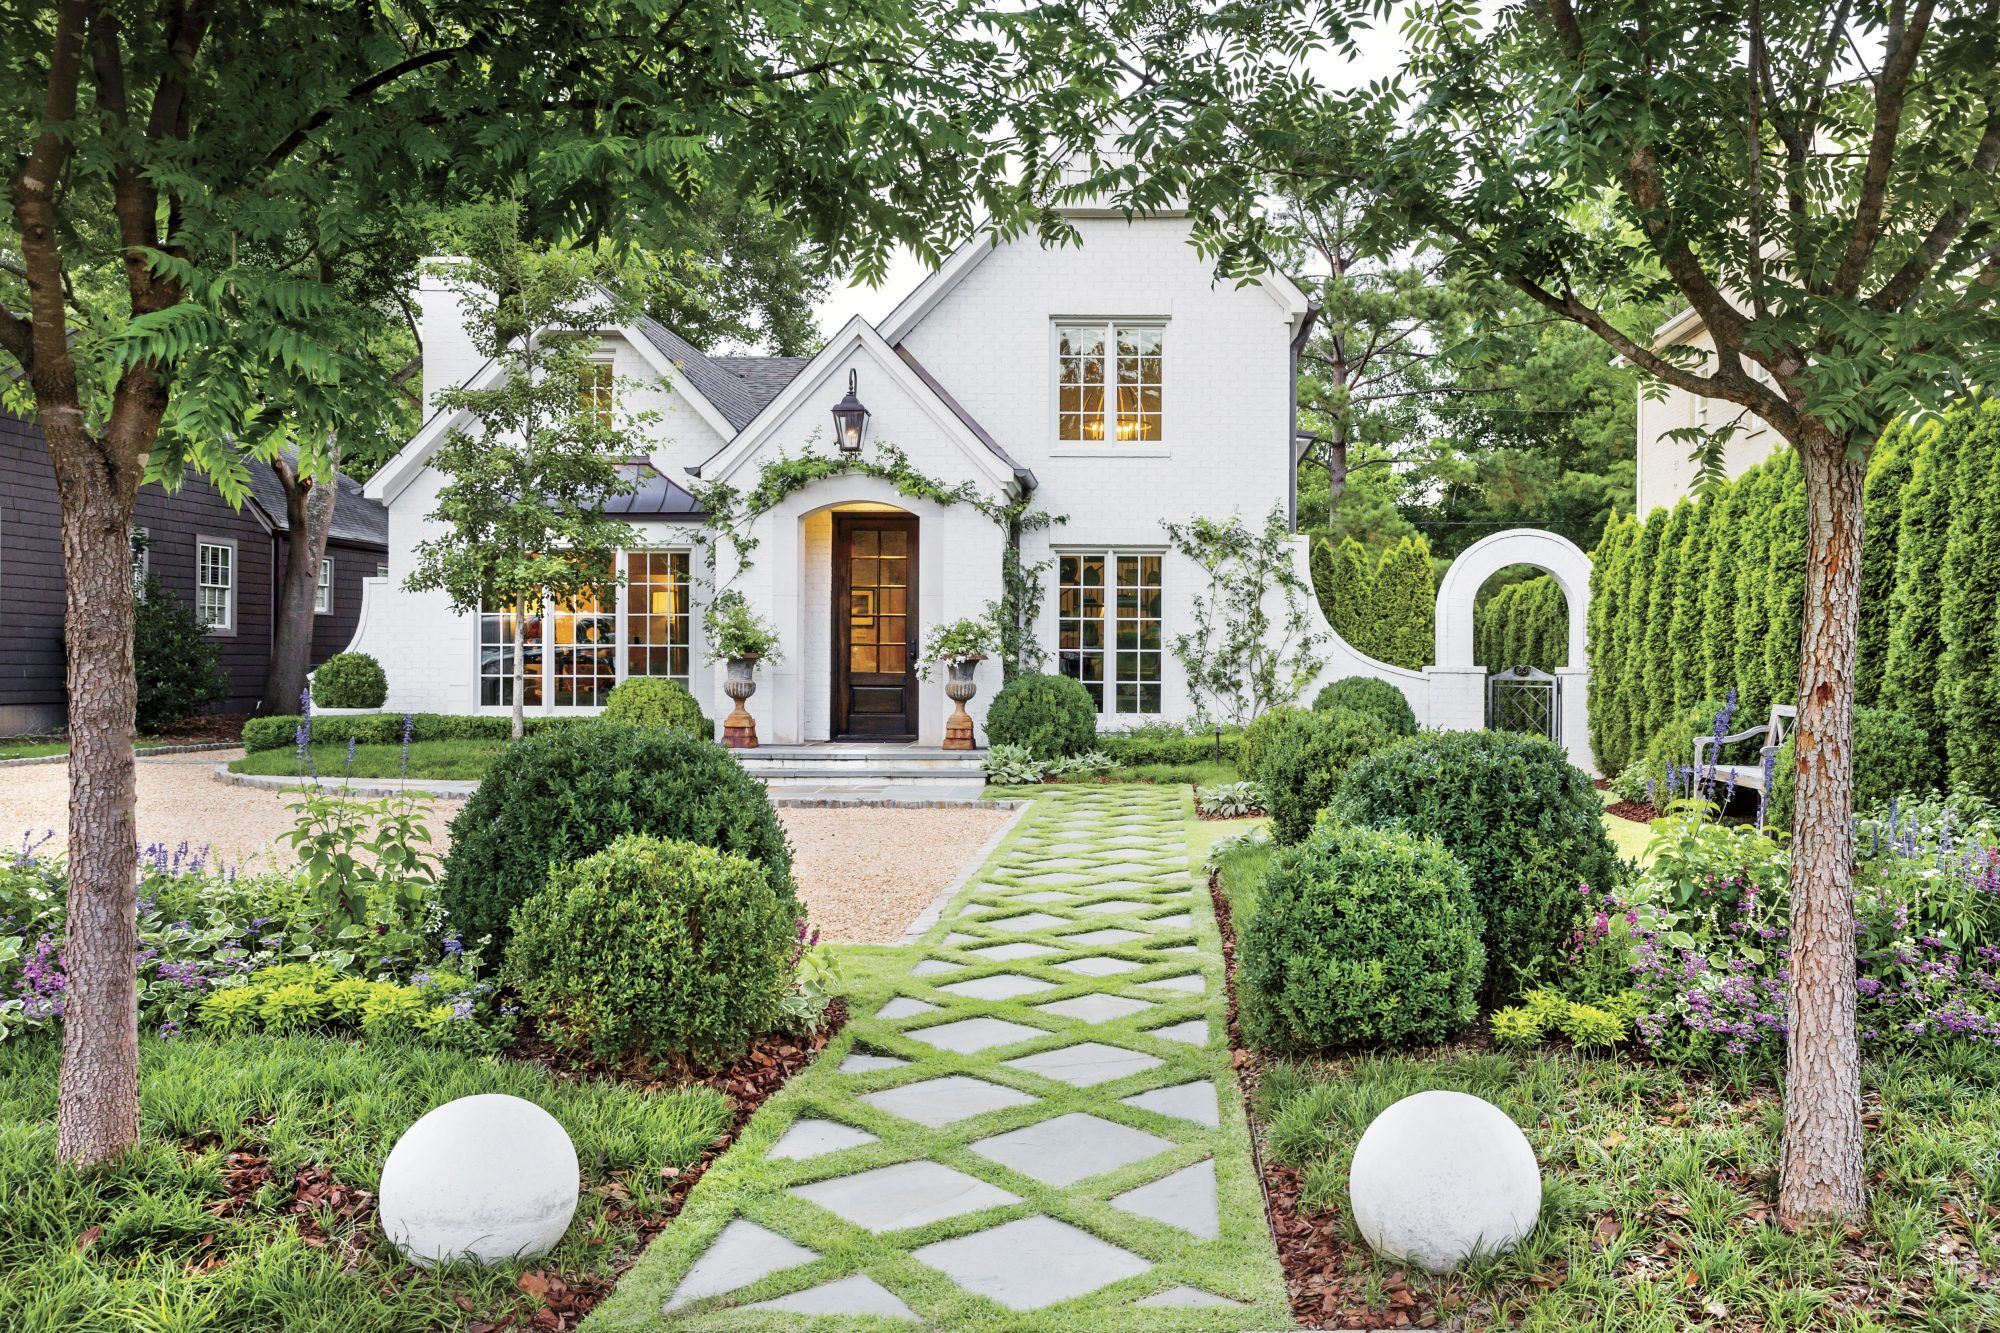 How Landscaping Added Instant Charm To This New Birmingham Home White Brick Houses White Exterior Paint Dream House Exterior New house backyard ideas